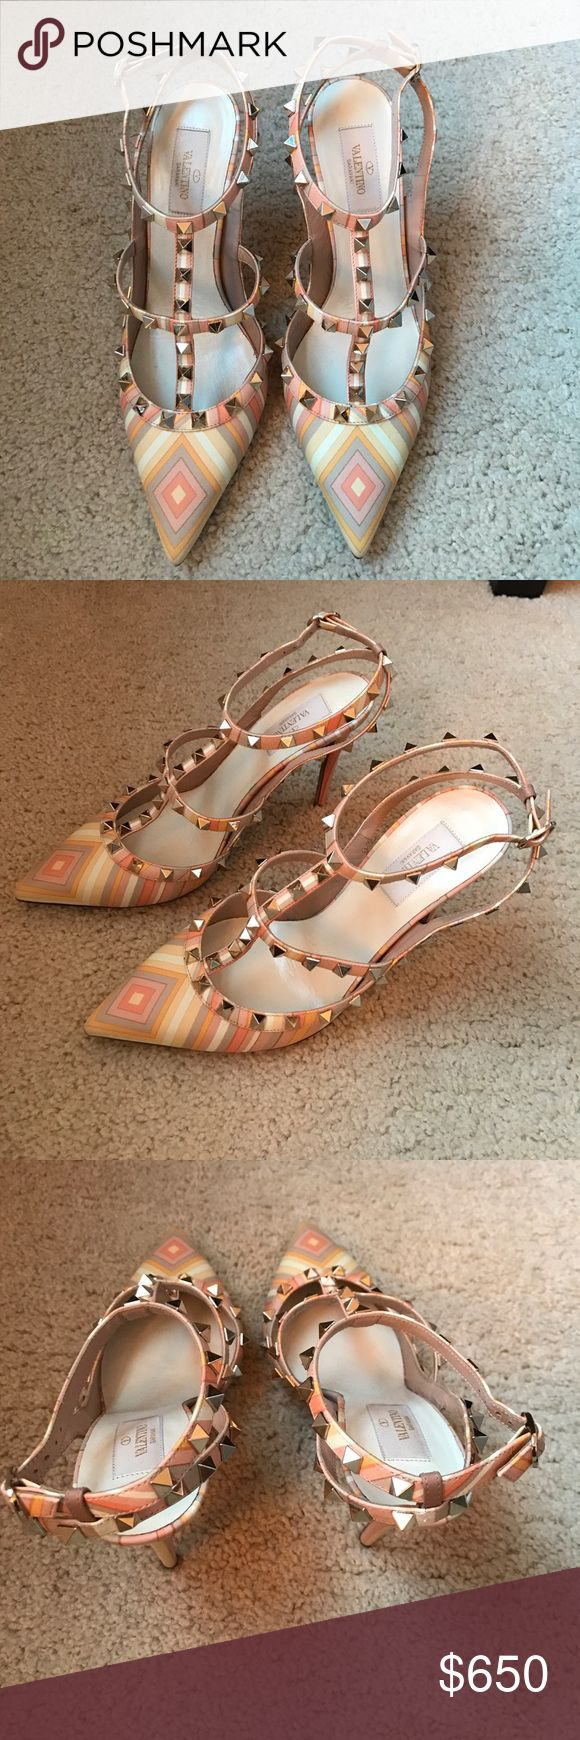 Valentino Rockstud Pumps New never worn, come with box and dust bag Valentino Shoes